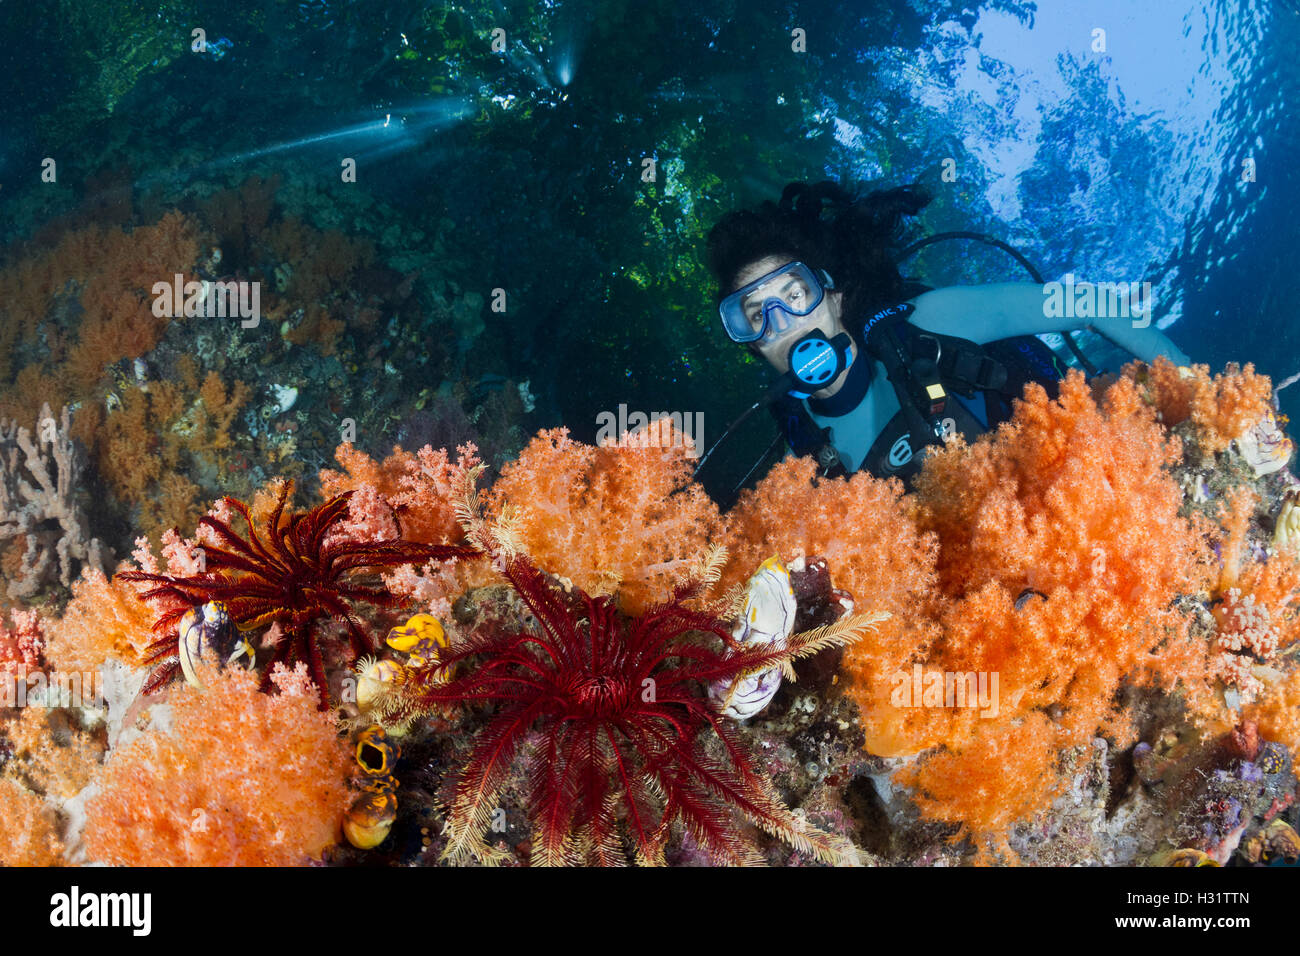 scuba diver (model released) admires soft corals (Dendronephthya sp.) in current swept passage. tropical Indo-Pacific - Stock Image